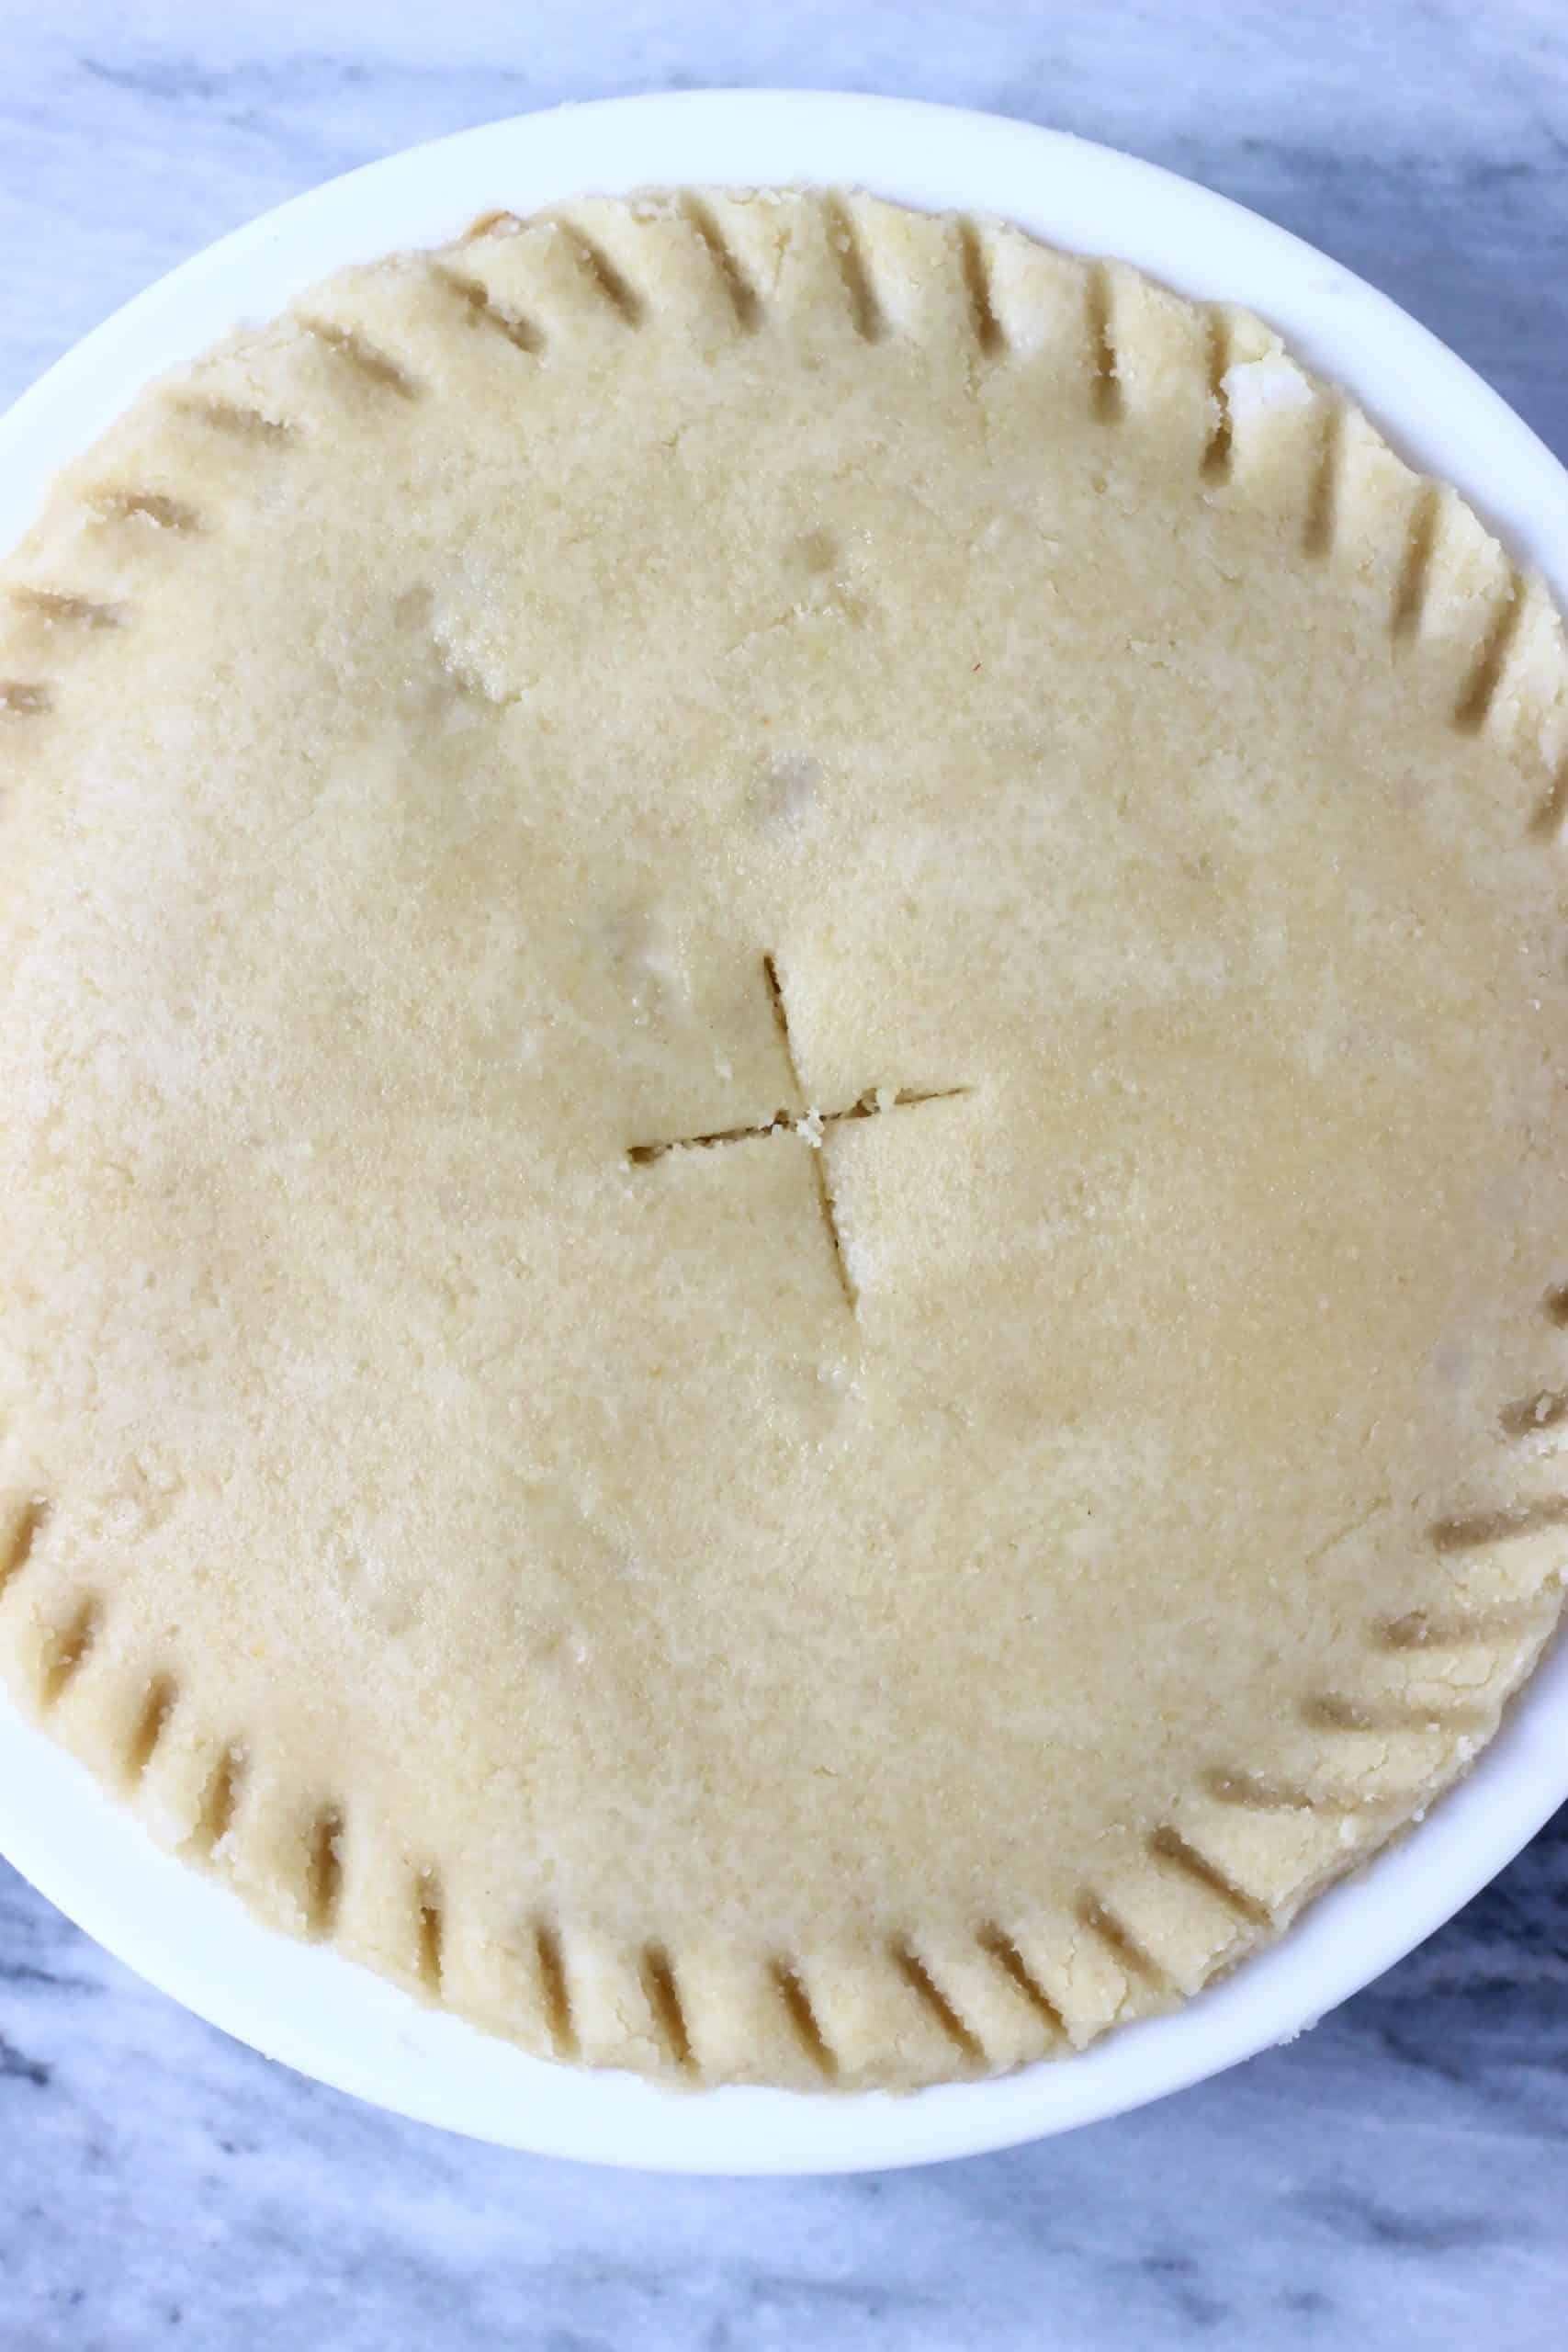 A raw gluten-free vegan apple pie in a pie dish